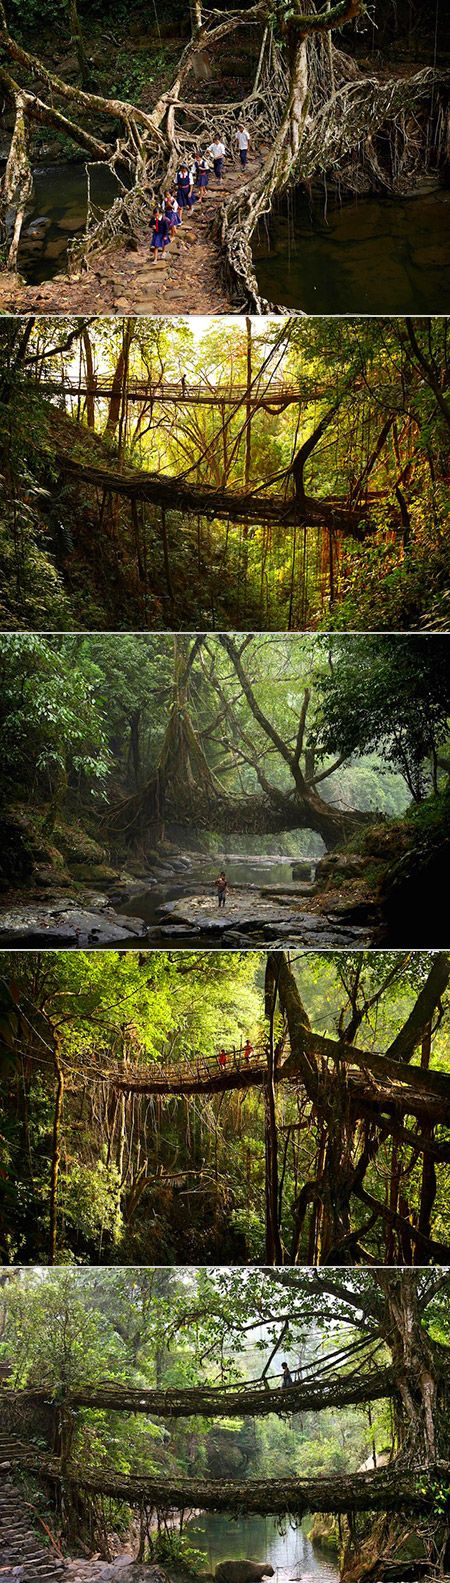 In the wettest place on Earth, the village of Mawsynram in Meghalaya, India are…